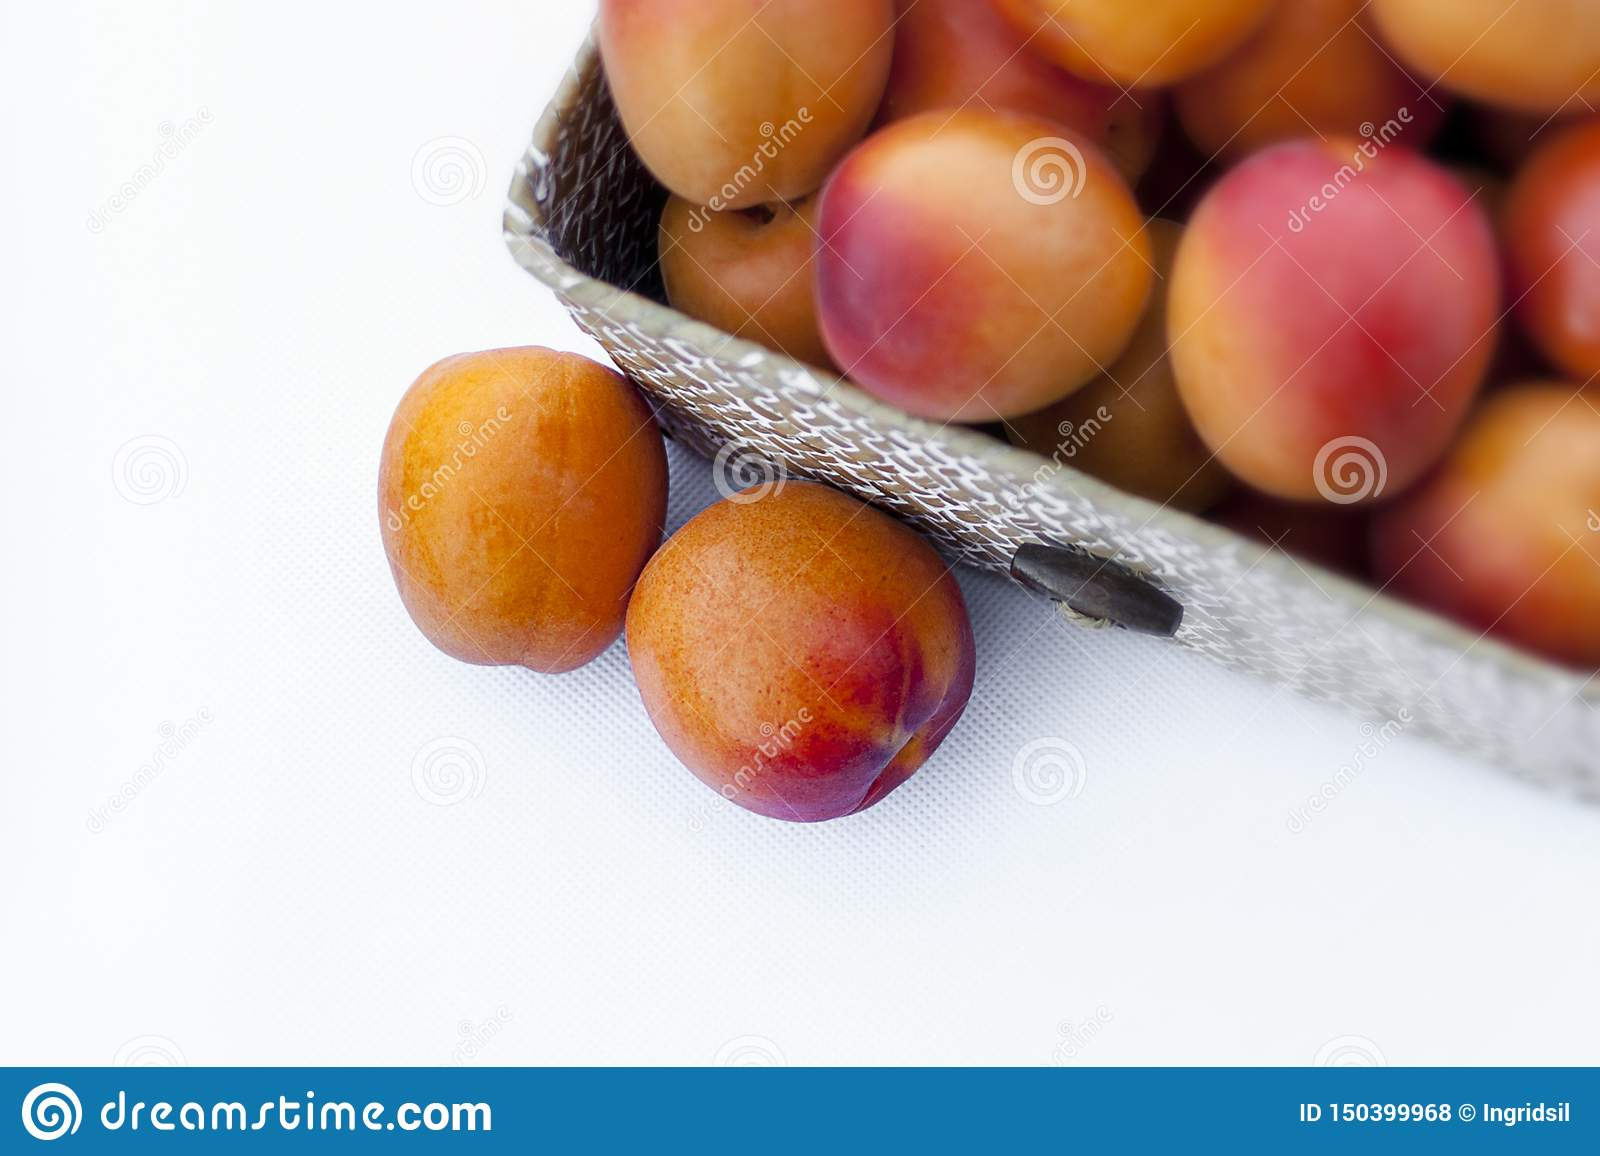 Fresh Organic Apricot In A Fiber Open Box On White Background Some Apricots Stock Photo Image Of Apricot Carotene 150399968